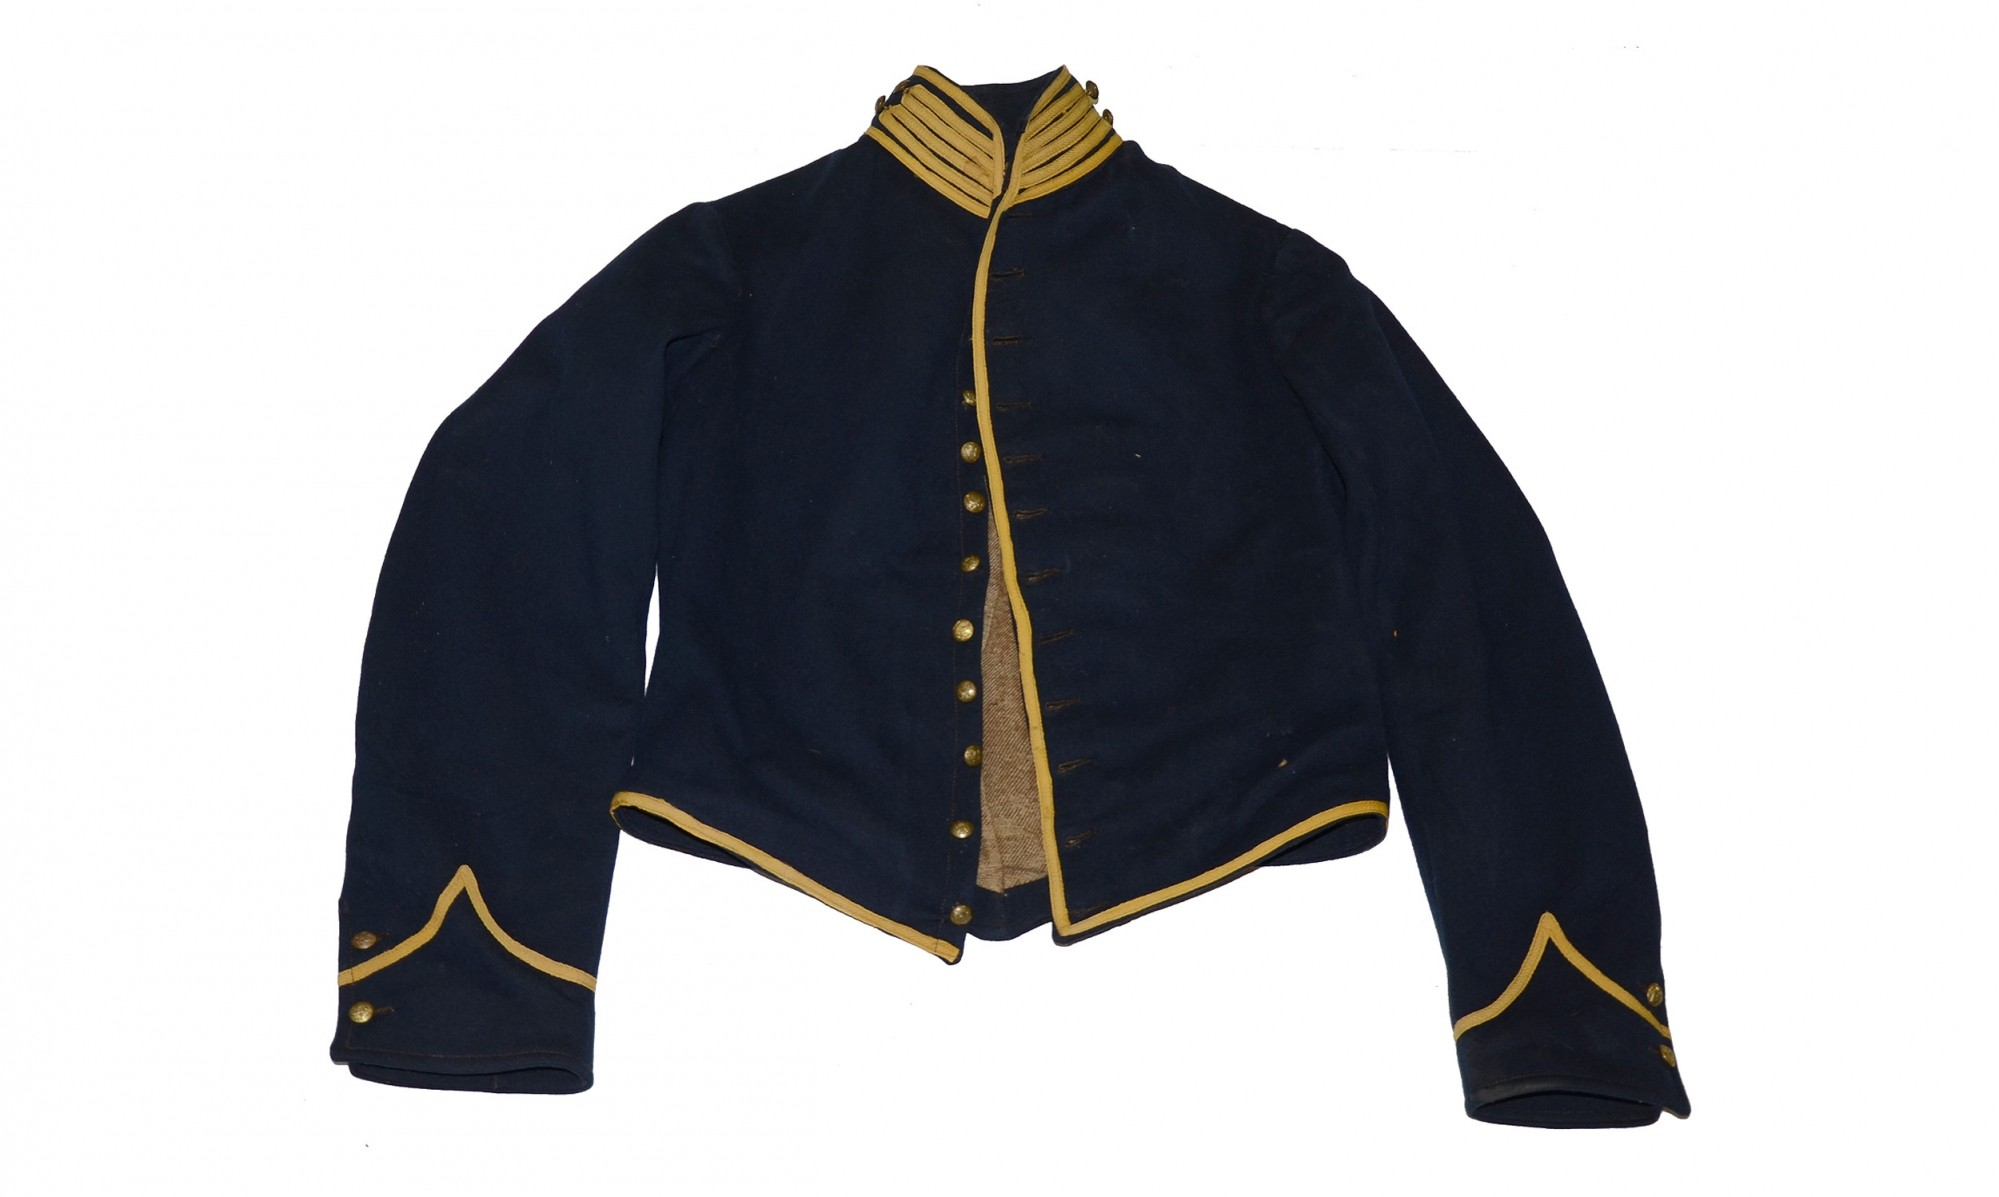 FINE, GOVERNMENT-INSPECTED, FEDERAL CAVALRYMAN'S UNIFORM SHELL JACKET